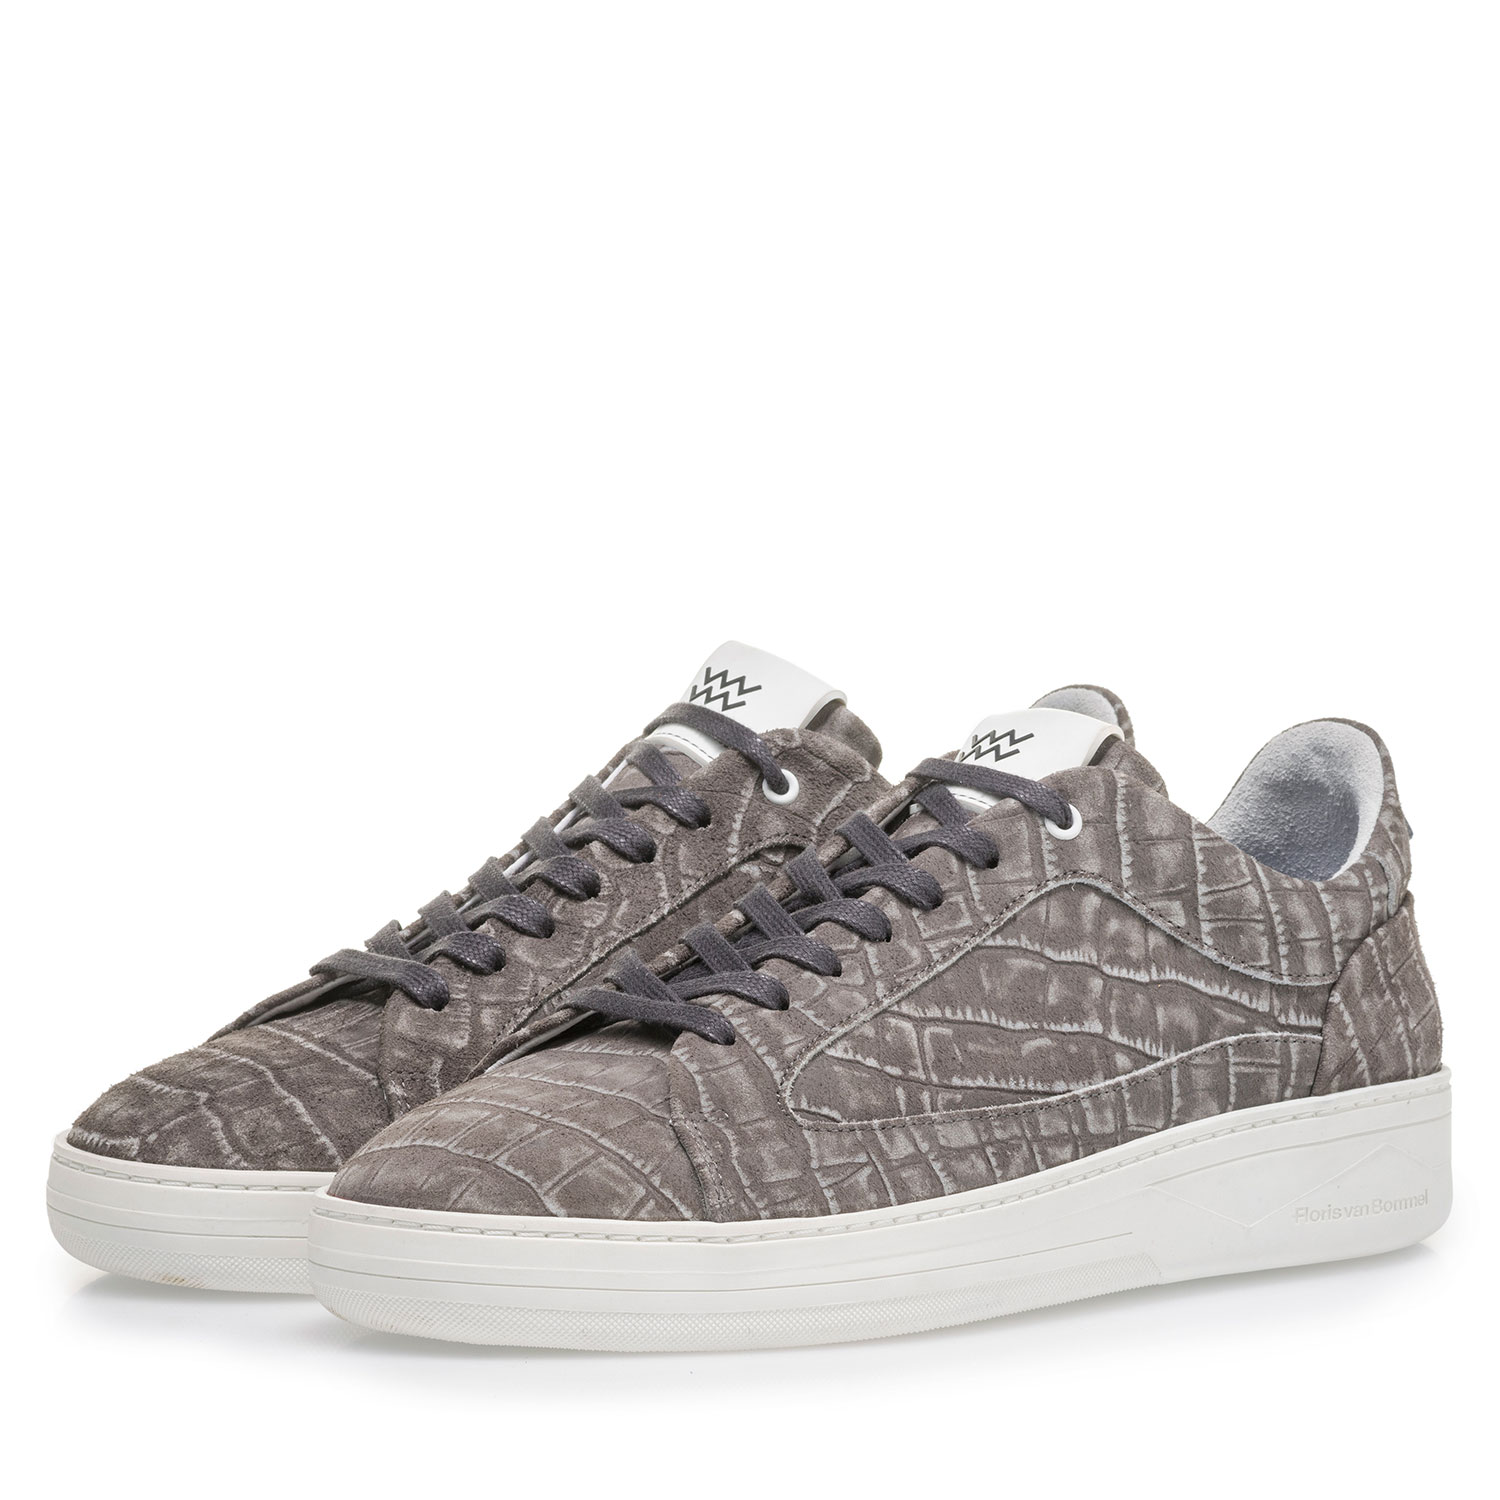 13265/06 - Dark grey sneaker with croco print